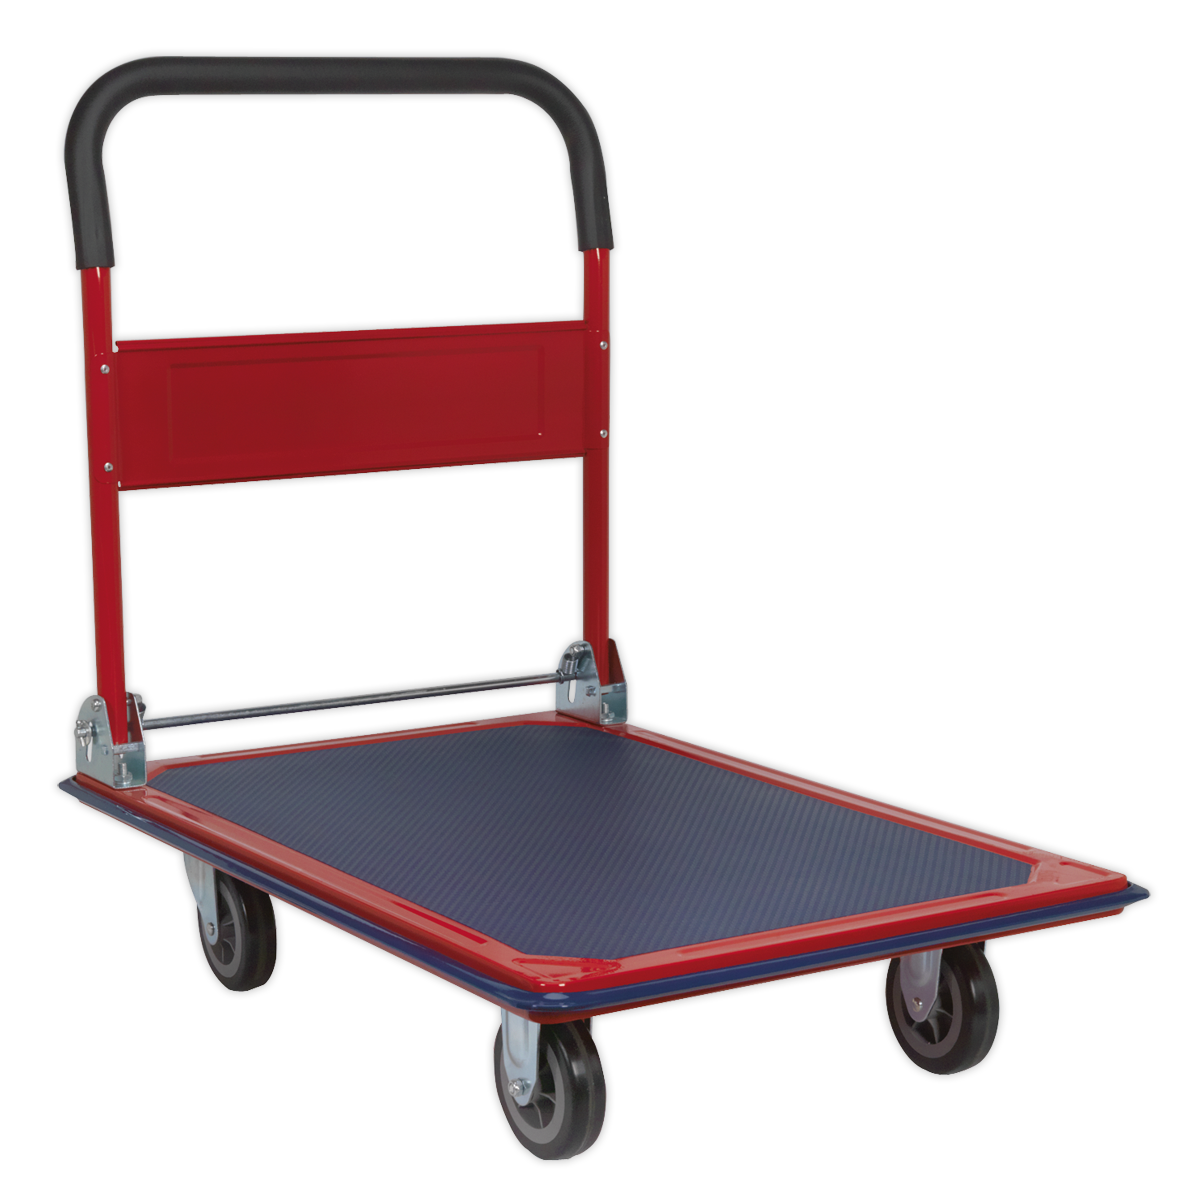 Platform Truck 300kg Capacity   SEALEY CST992 by Sealey   New